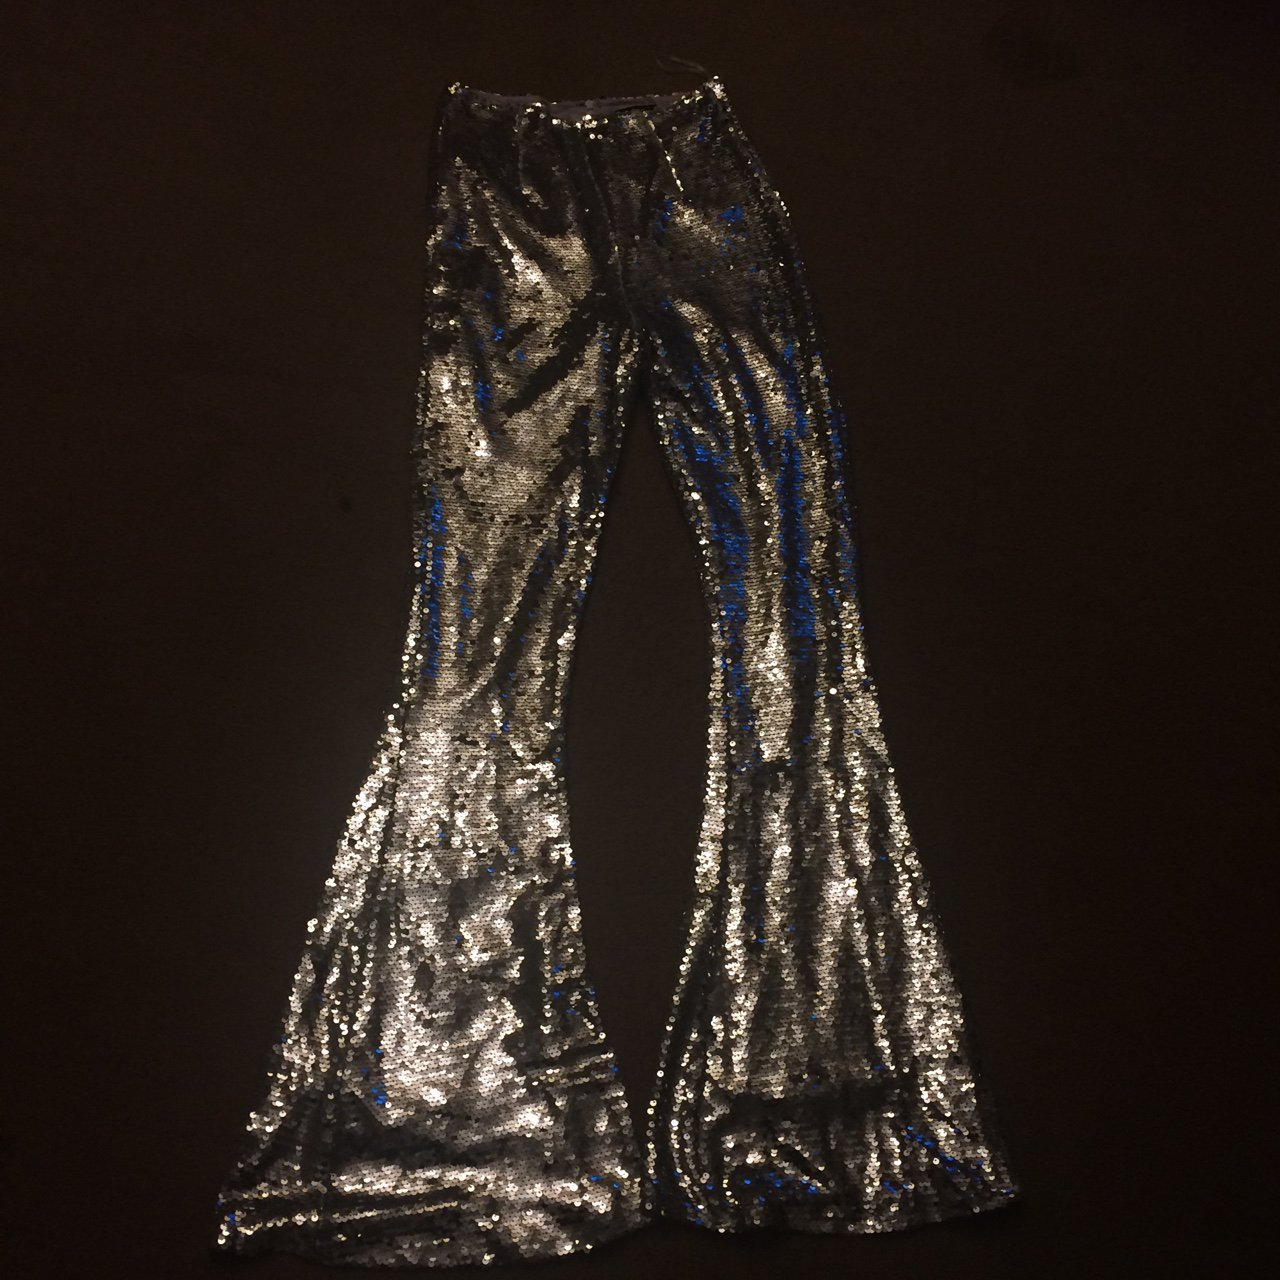 75a3662f39c Missguided Peace   Love sequin trousers. Size 8 brand new - Depop